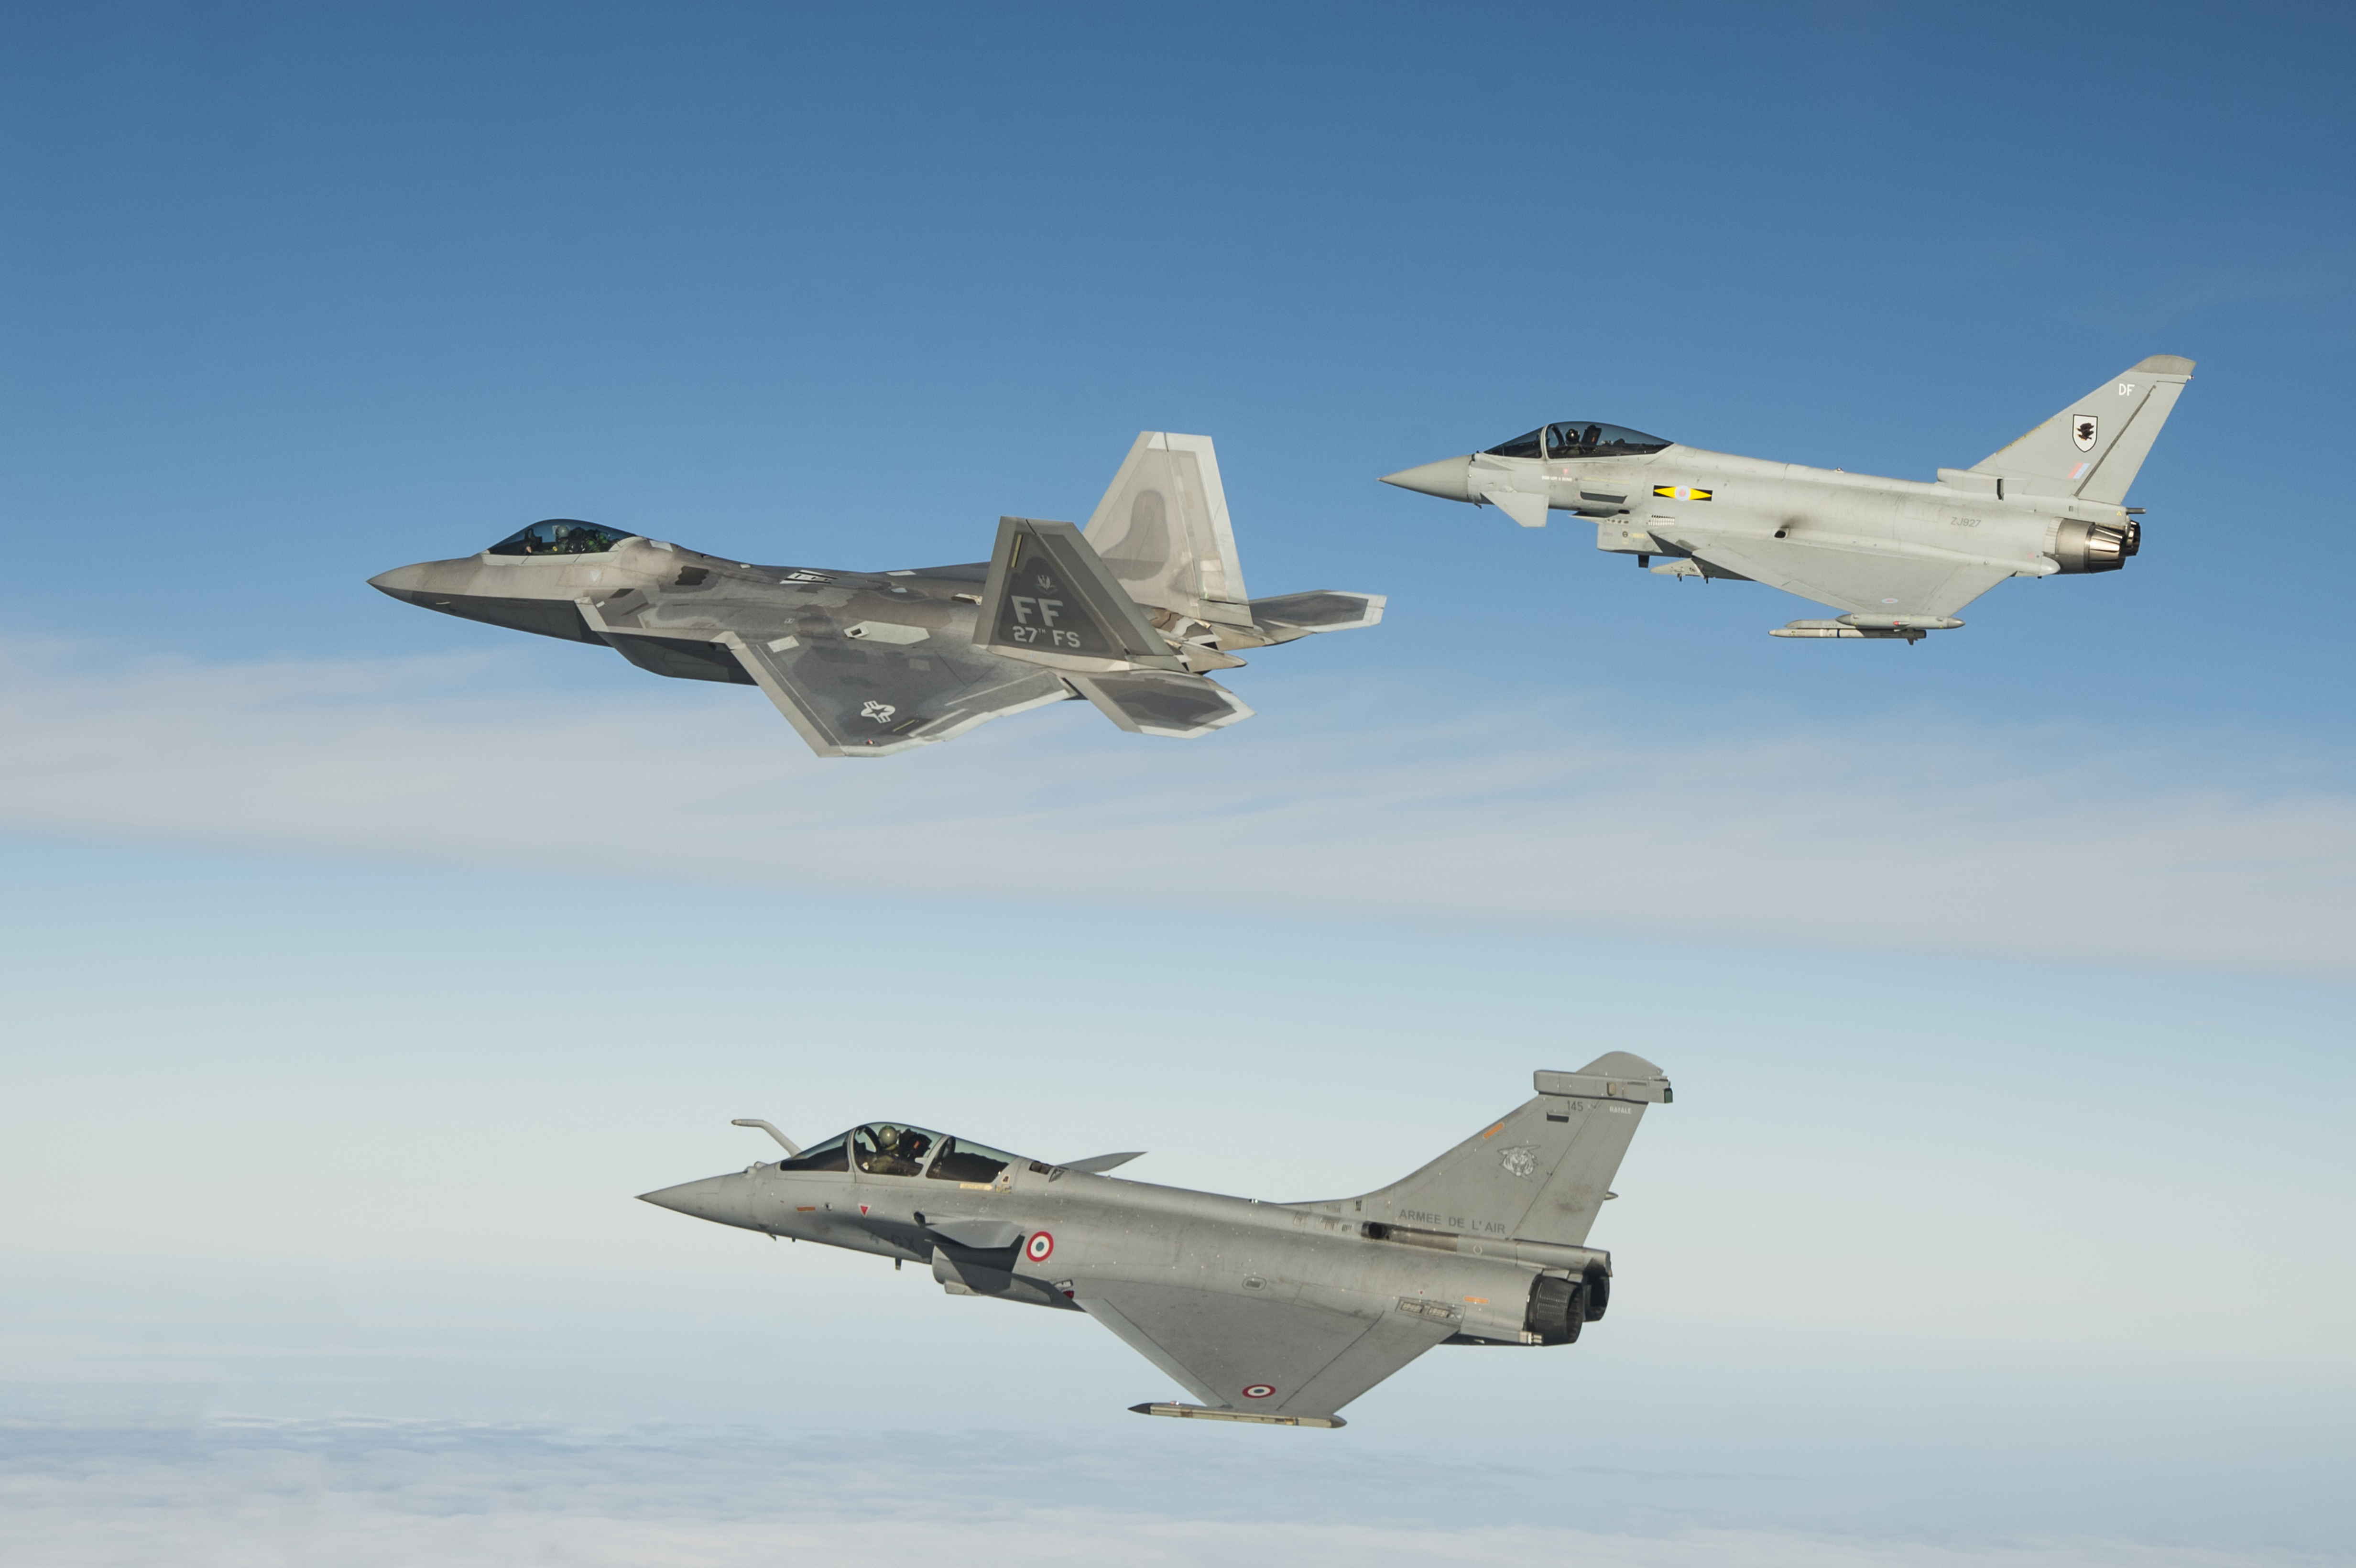 F-22, Typhoon, Rafale: Lessons From The Trilateral Wargame